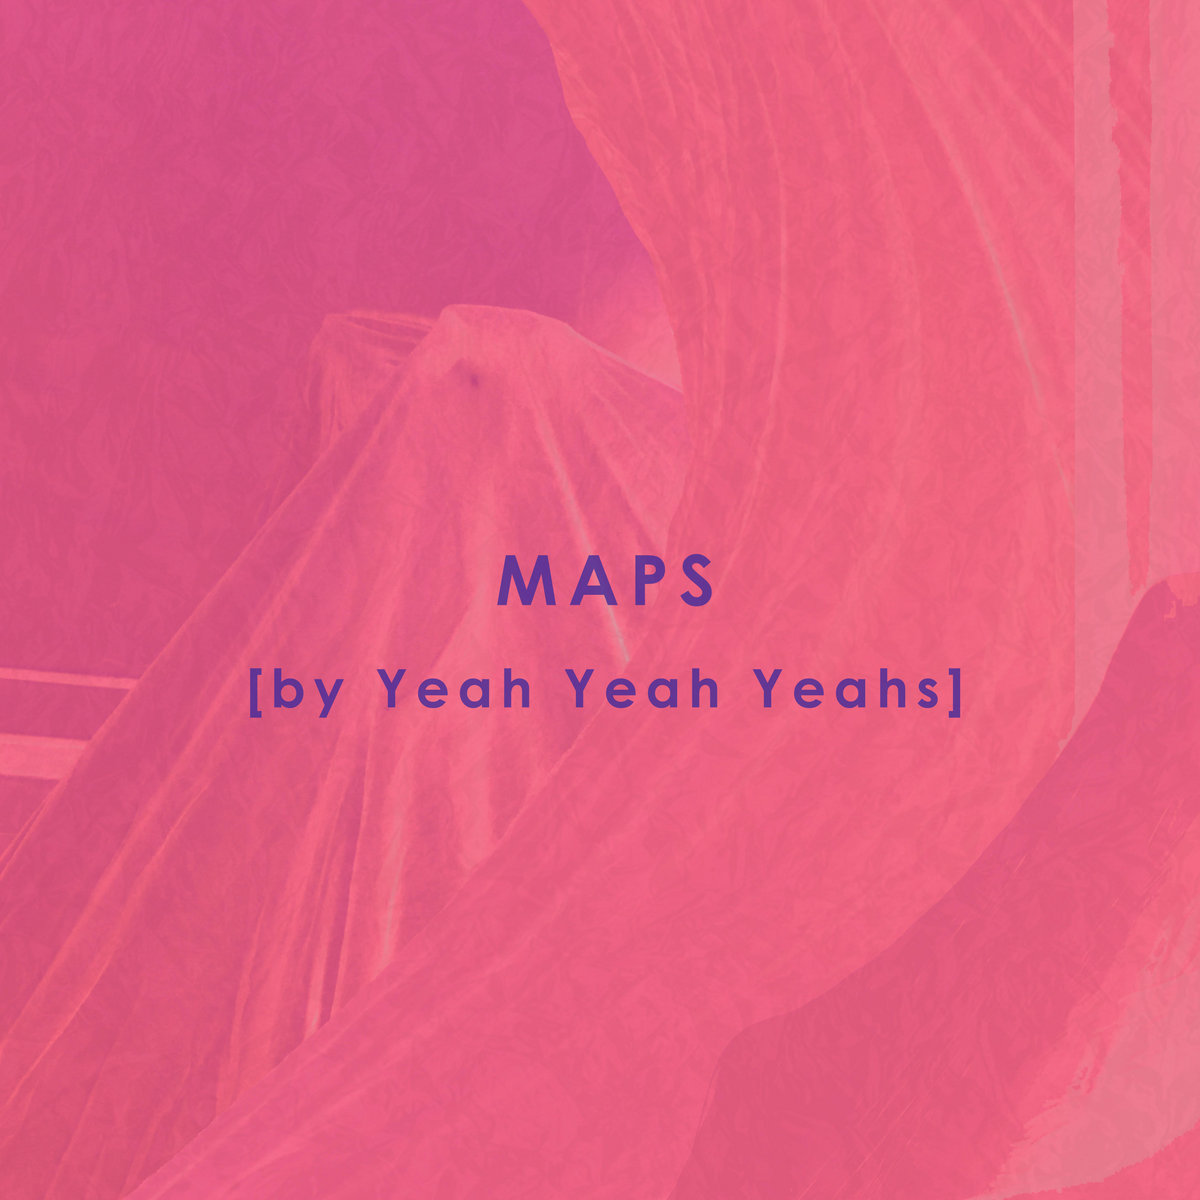 Maps (Yeah Yeah Yeahs cover) | The Parlor Pinks on